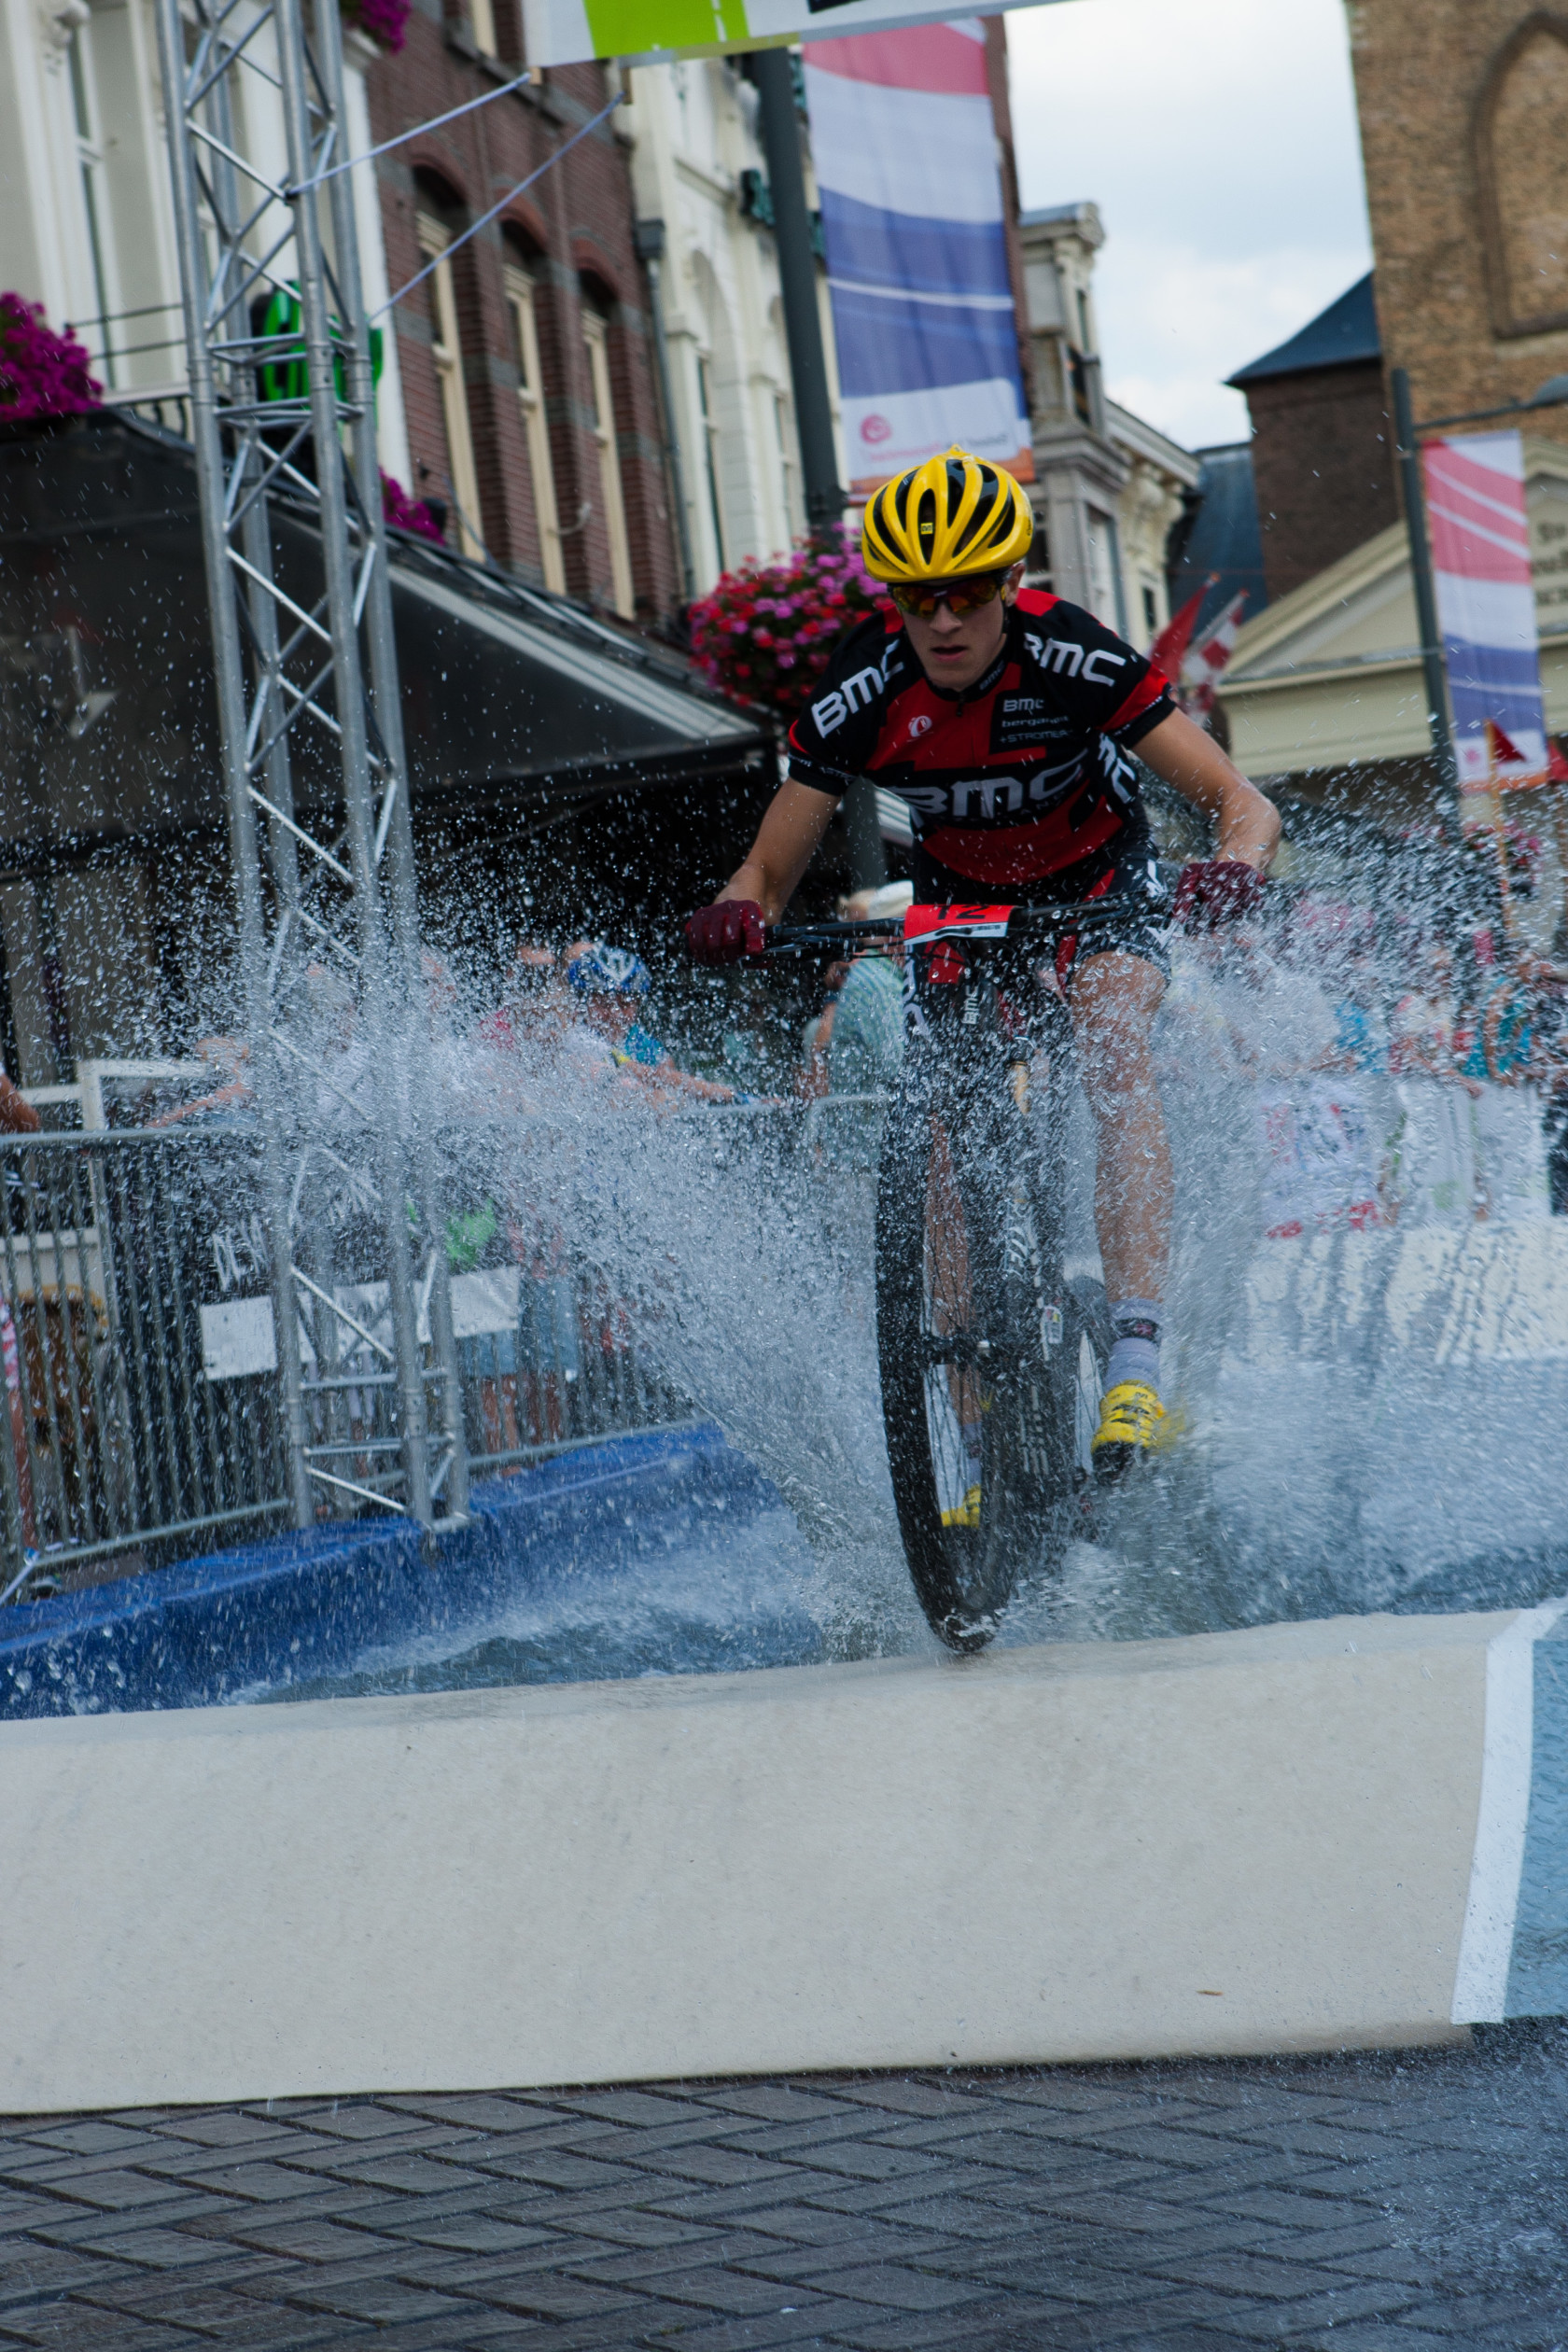 City Mountainbike RoosendaalPodium 72dpiLoek PIctures Belgium 040814 2